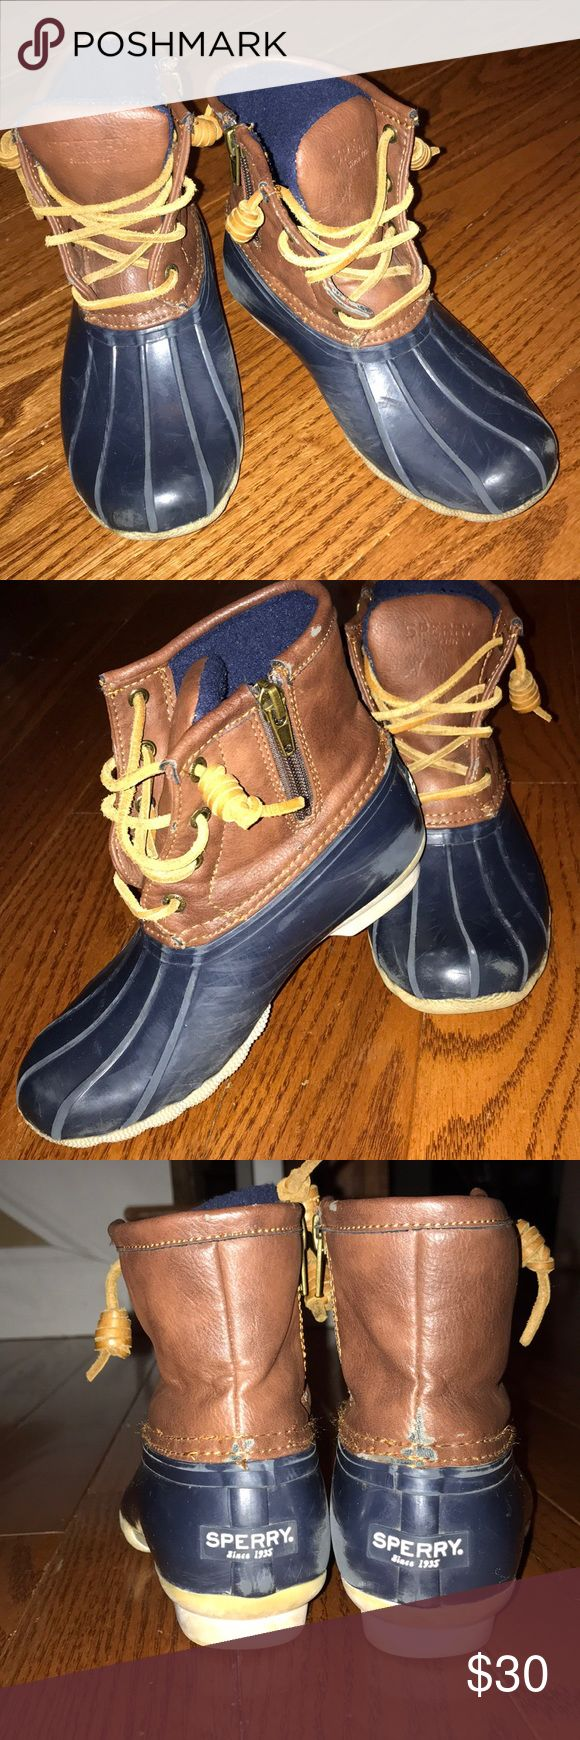 Girls navy Sperry boots size 1 Girls Sperry saltwater boots. Navy. Size 1 little girls. In good used condition. Scuffing on the inner side due to boots rubbing together while walking. Sperry Top-Sider Shoes Rain & Snow Boots